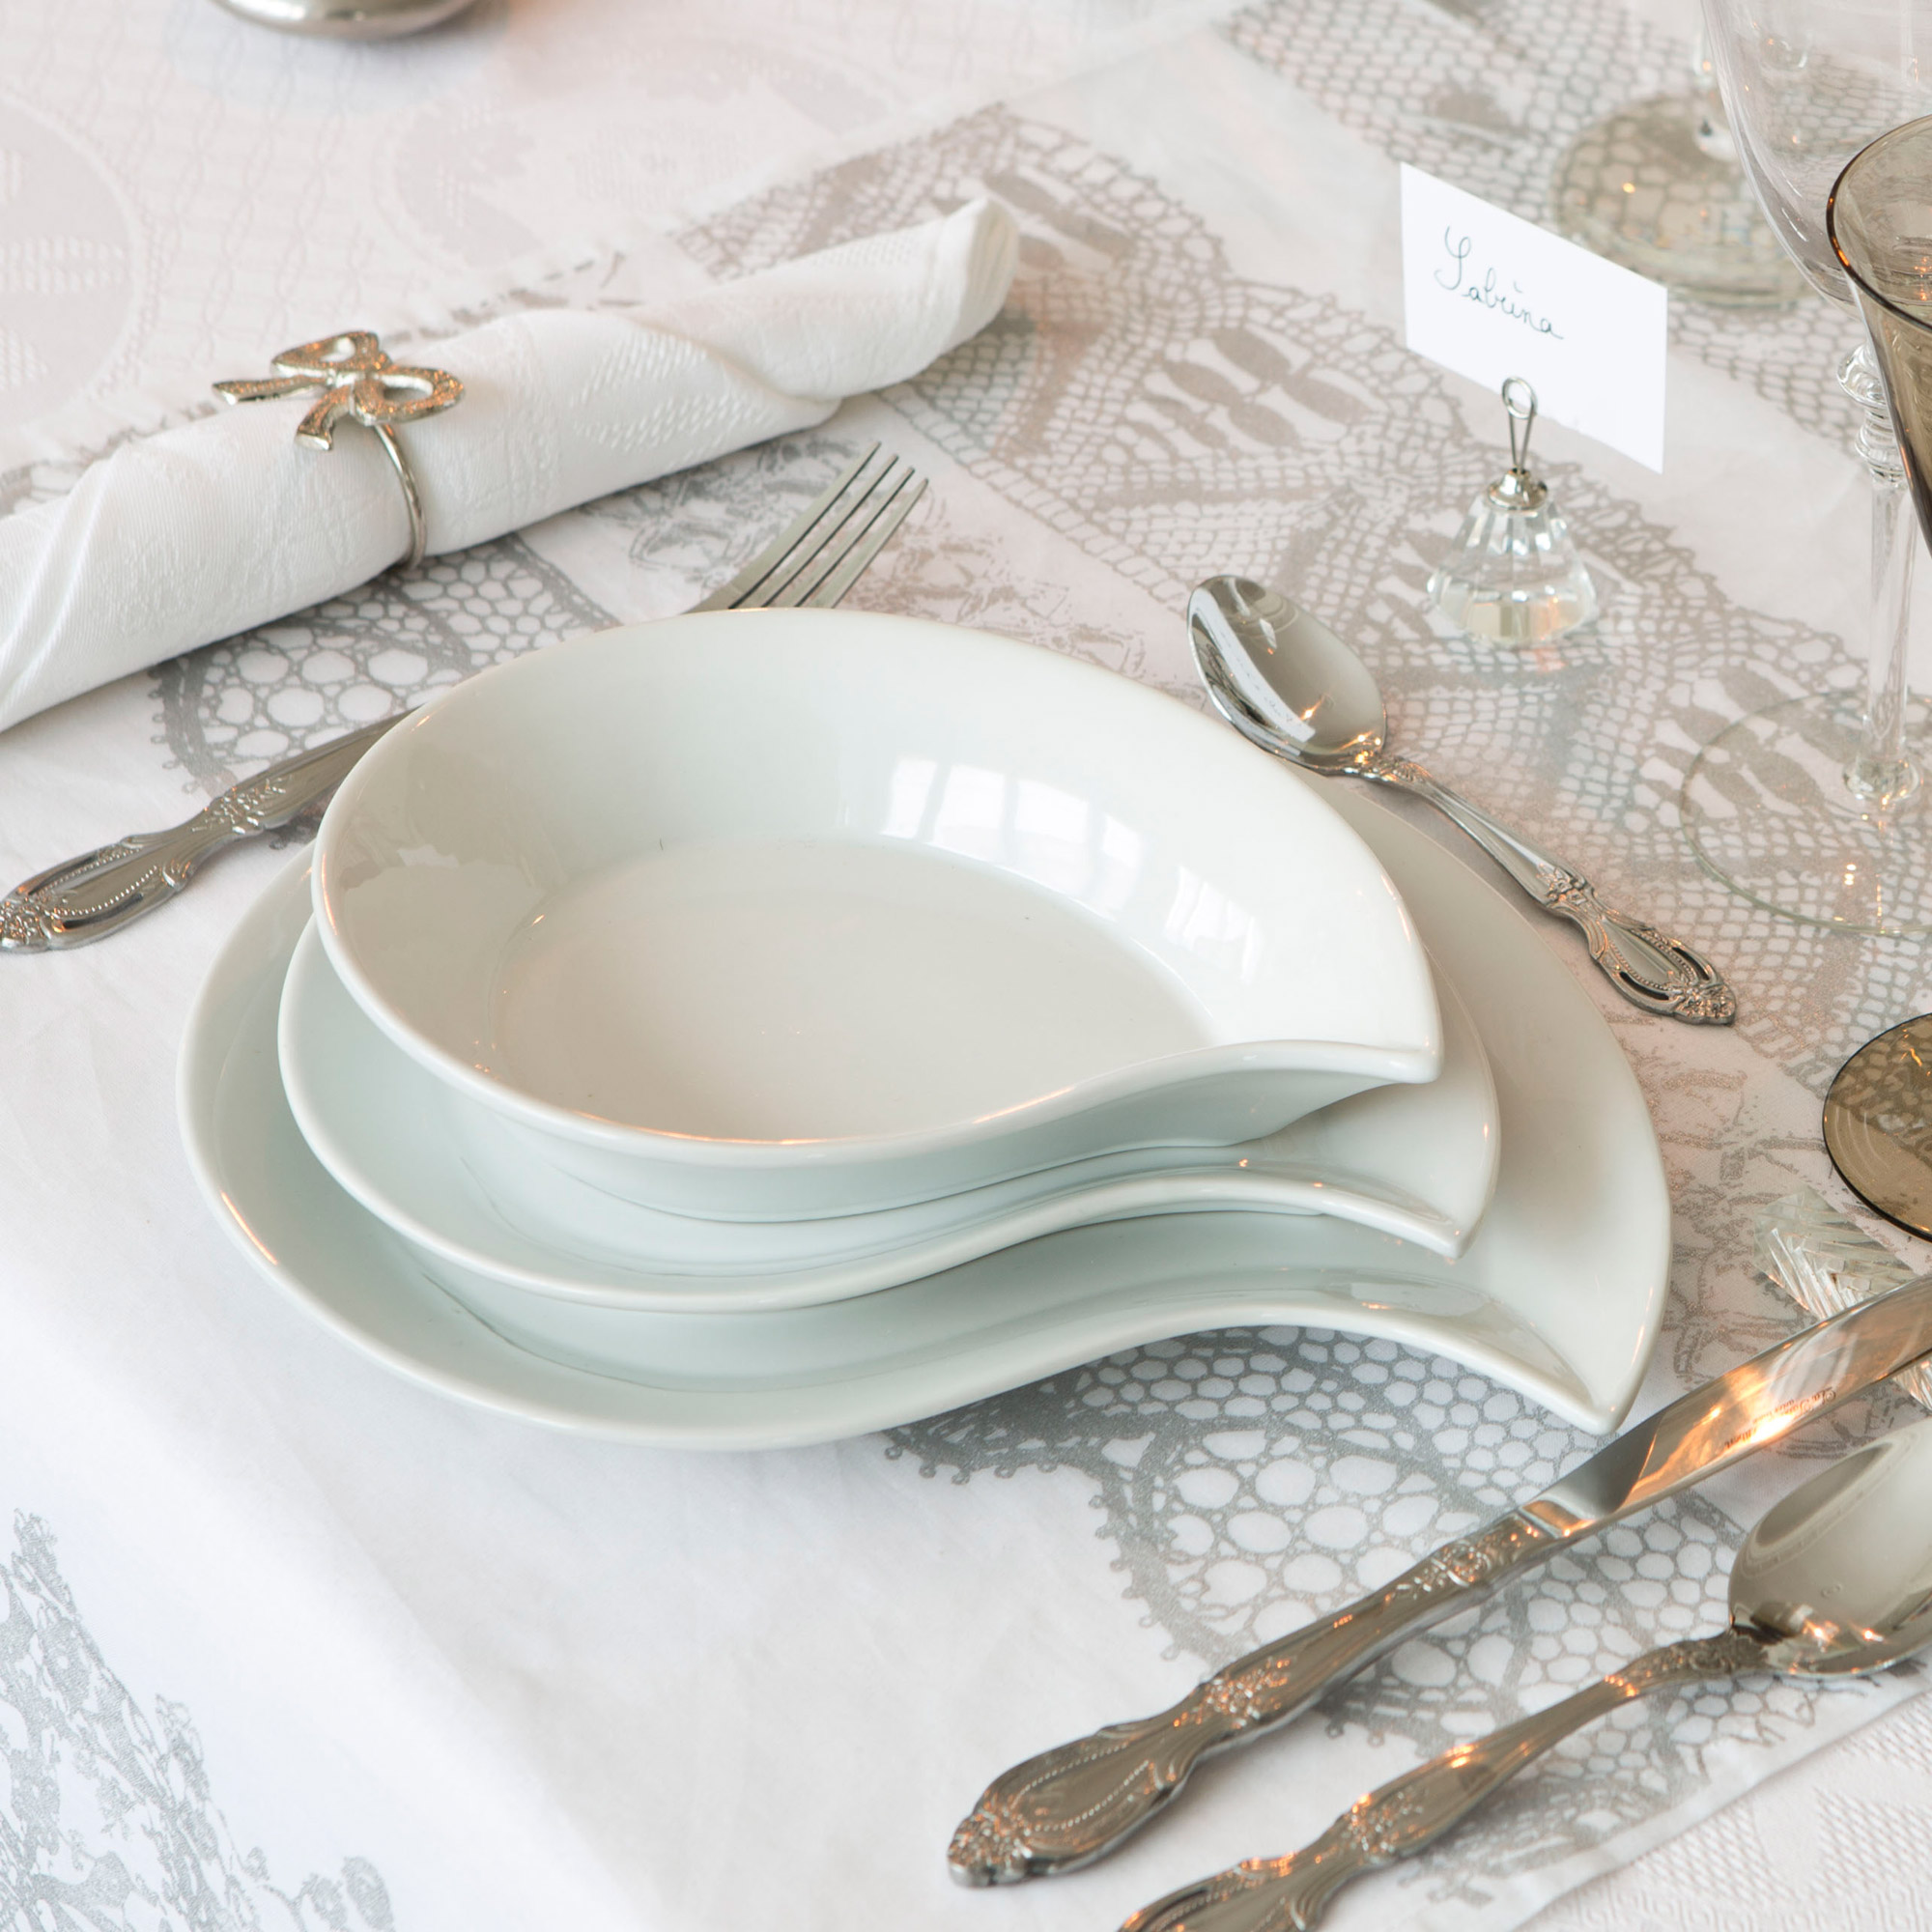 Service De Table 12 Pieces En Porcelaine Blanc Virgule Lola Mia